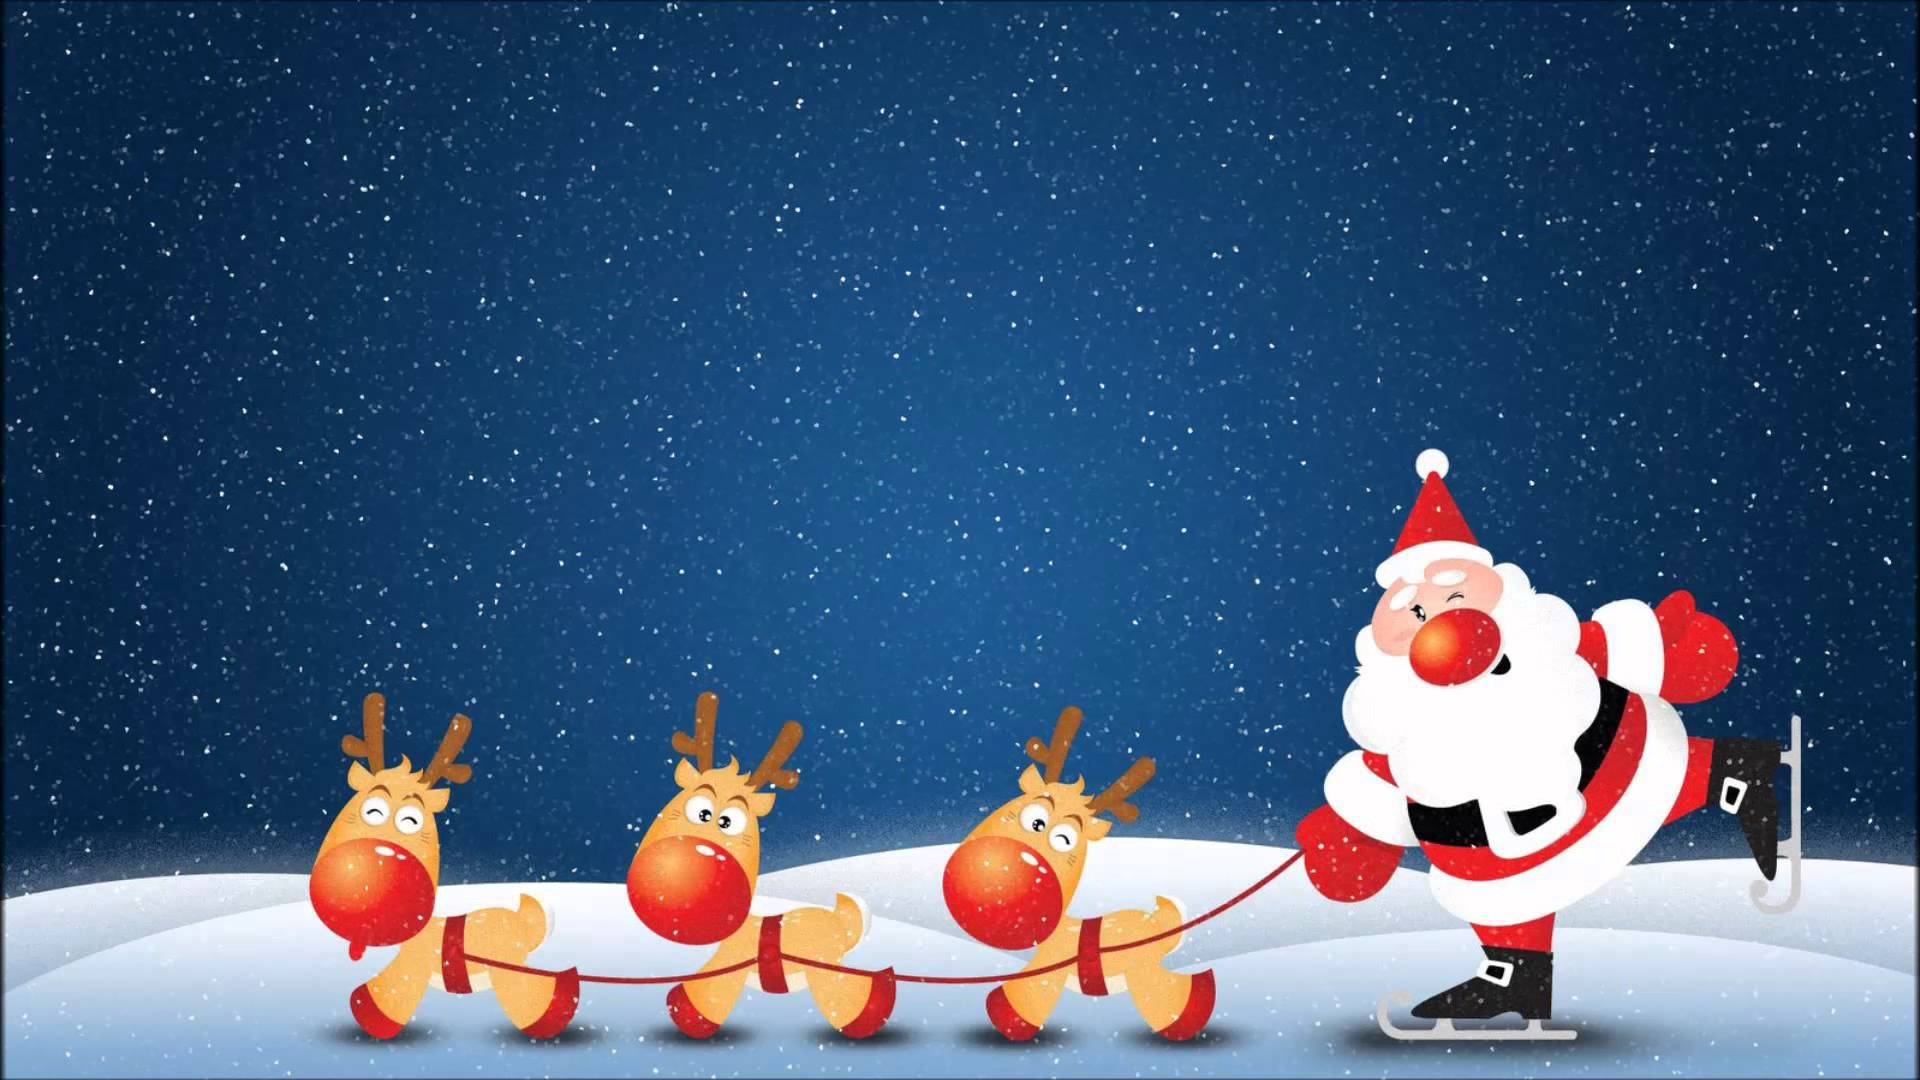 Res: 1920x1080, 5 KARAOKE RUDOLPH THE RED NOSED REINDEER - YouTube